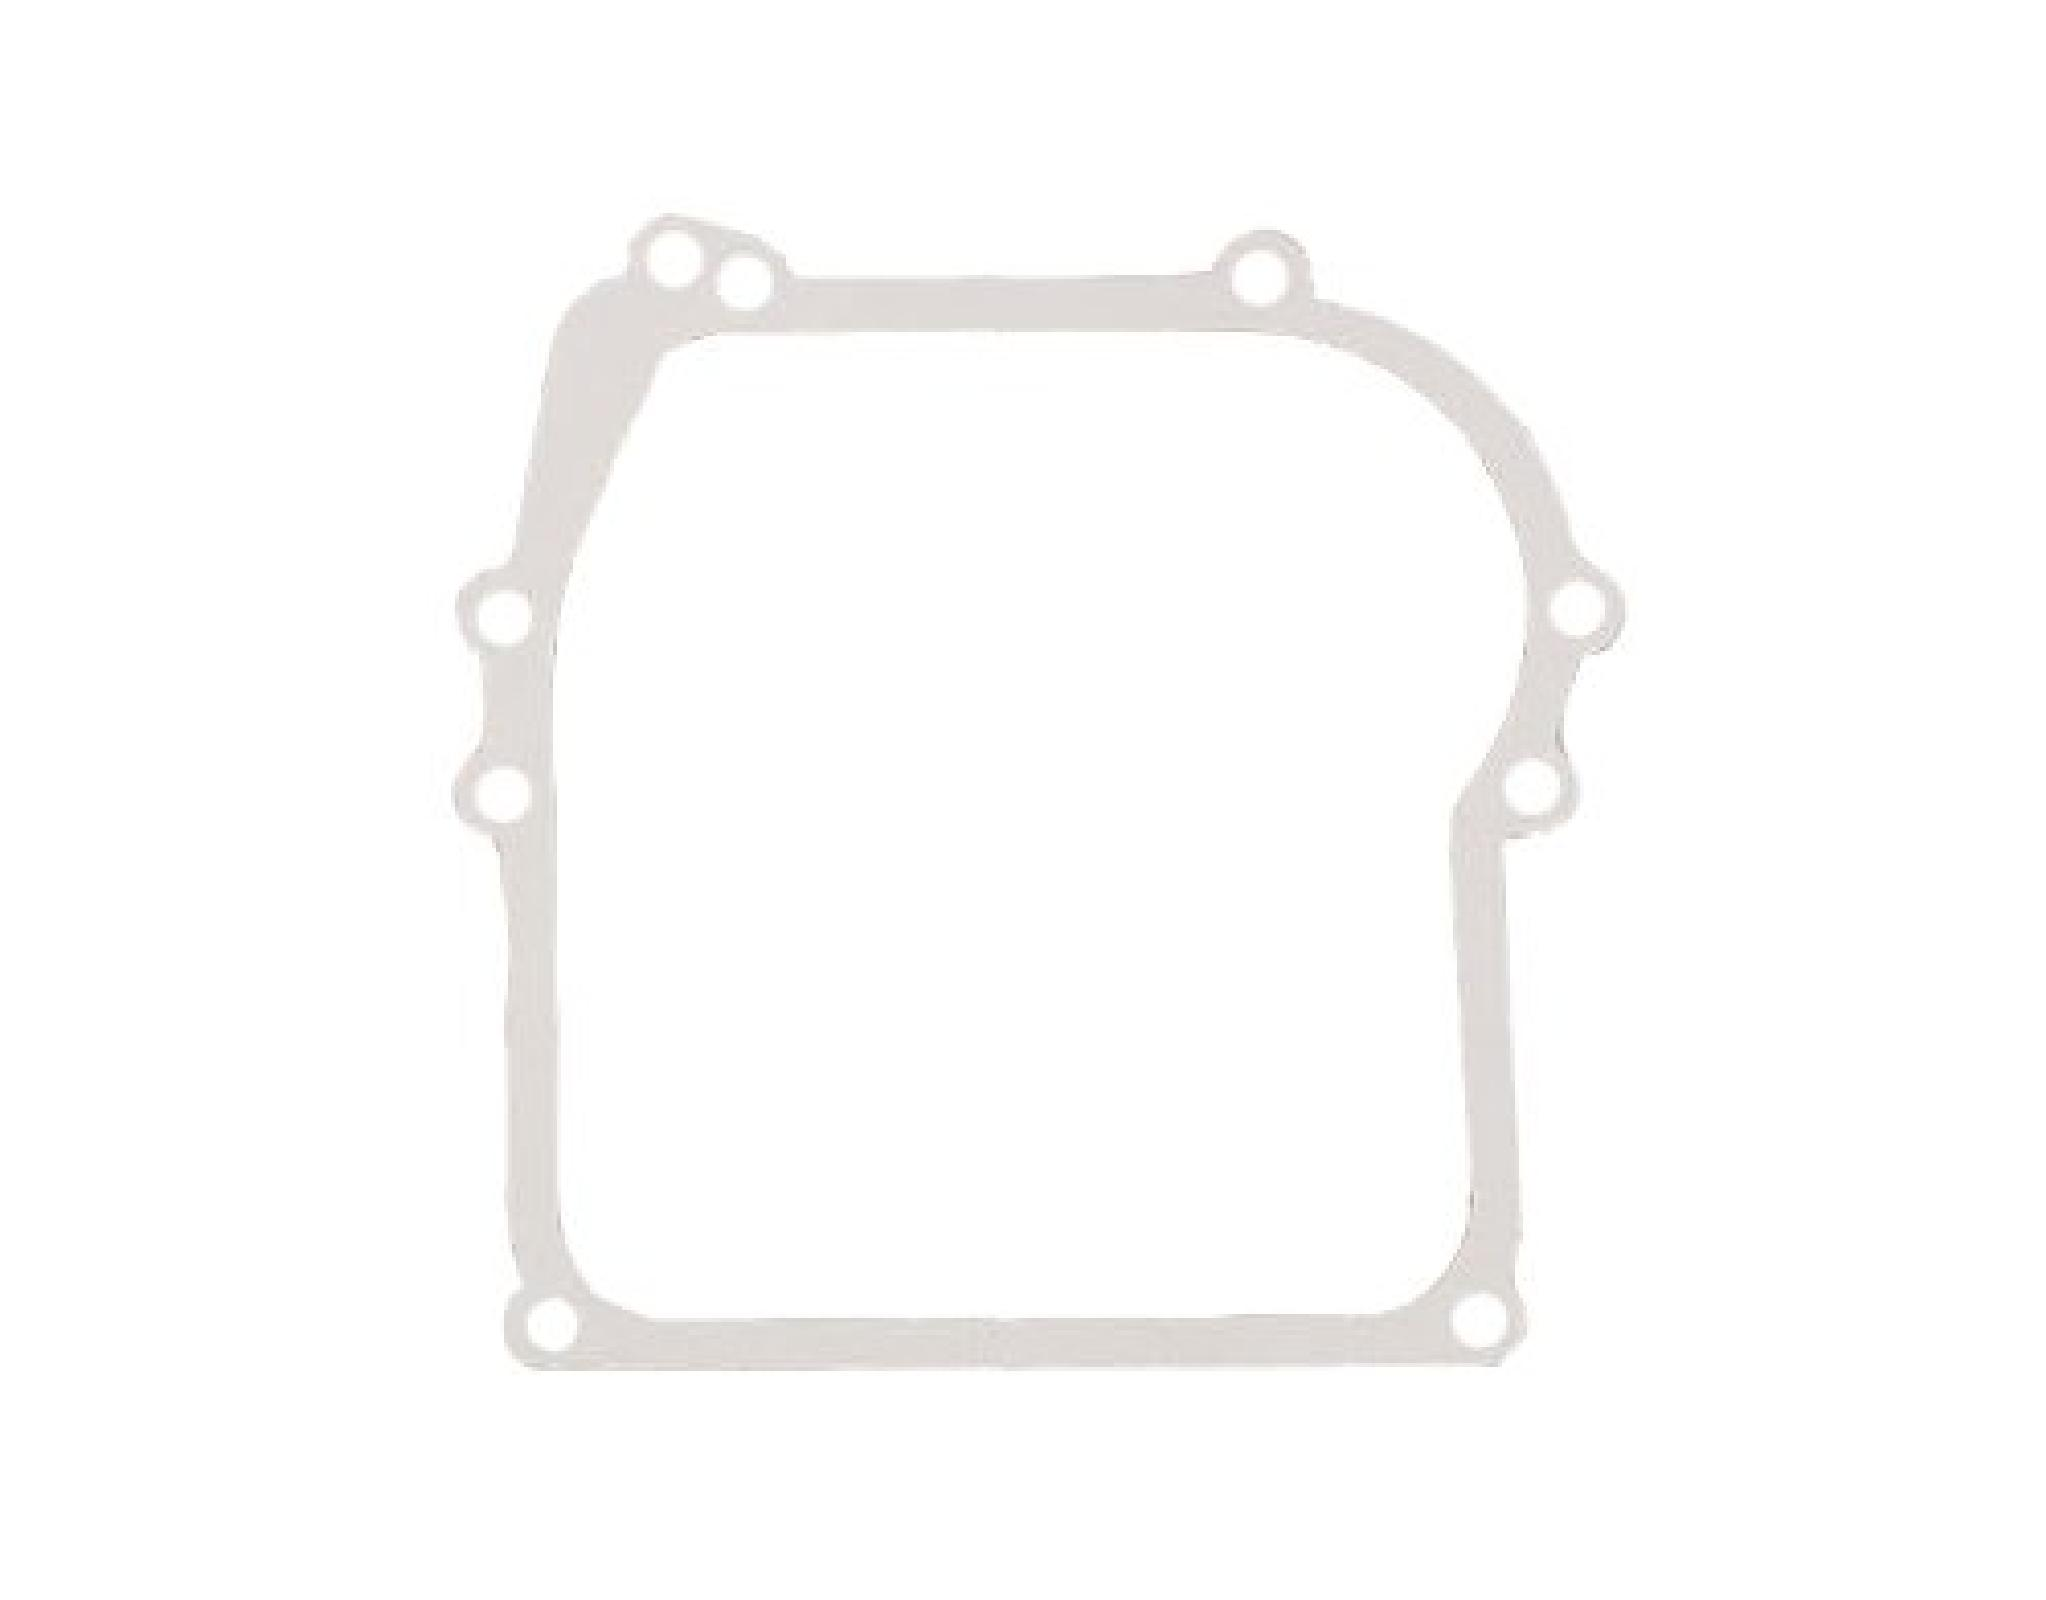 GASKET CRKCSE/009 part# 270896 by Briggs & Stratton